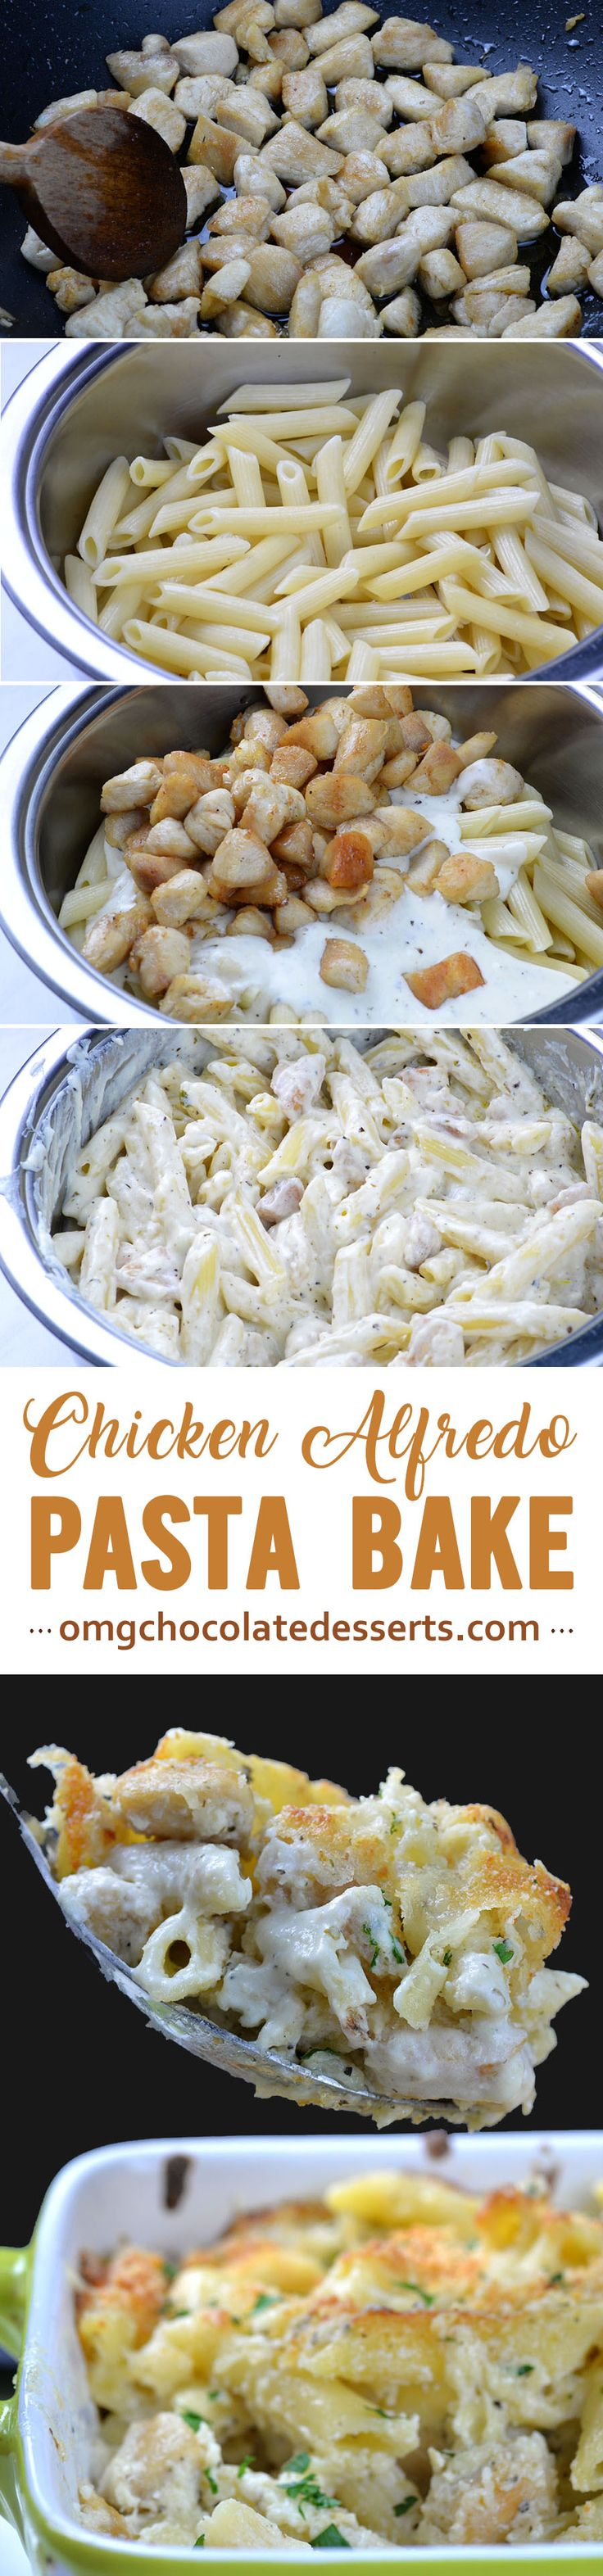 Chicken Alfredo Bake is EASY WEEKNIGHT DINNER CASSEROLE version of family favorite Chicken Alfredo. Cheesy, white sauce chicken Parmesan pasta is delicious, warm comfort food for cold winter nights!